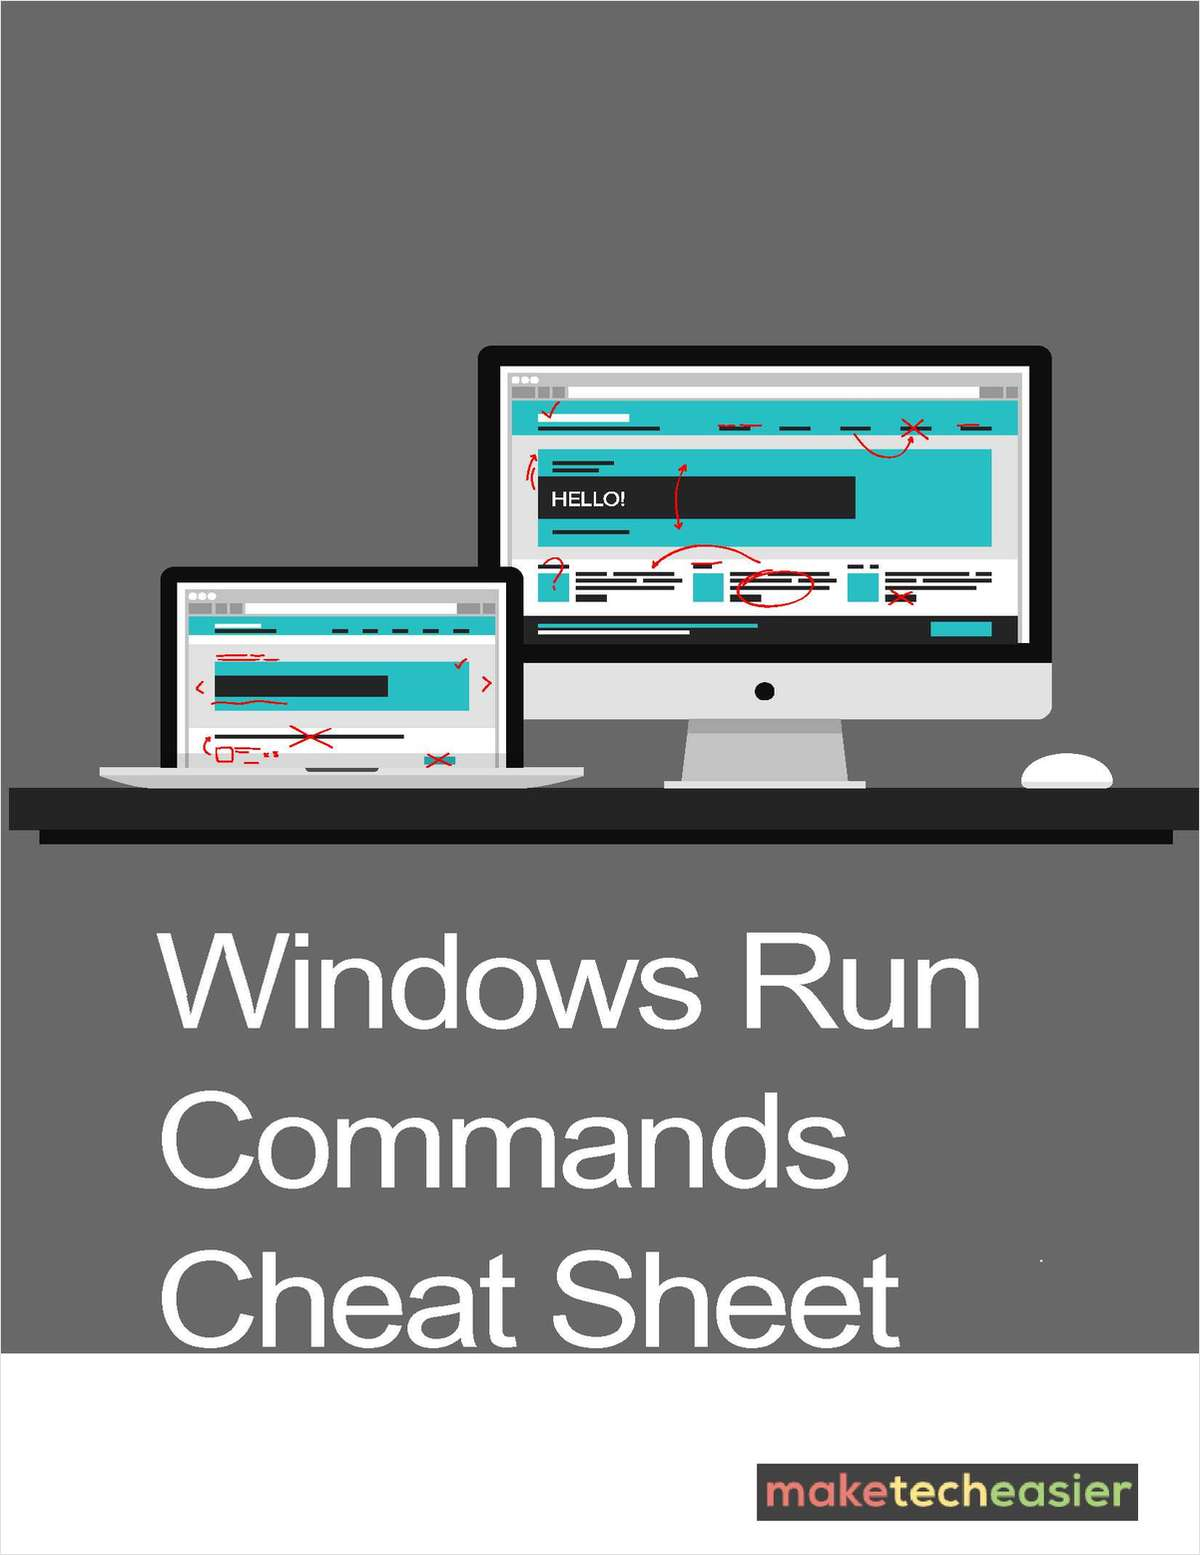 Windows Run Commands Cheat Sheet